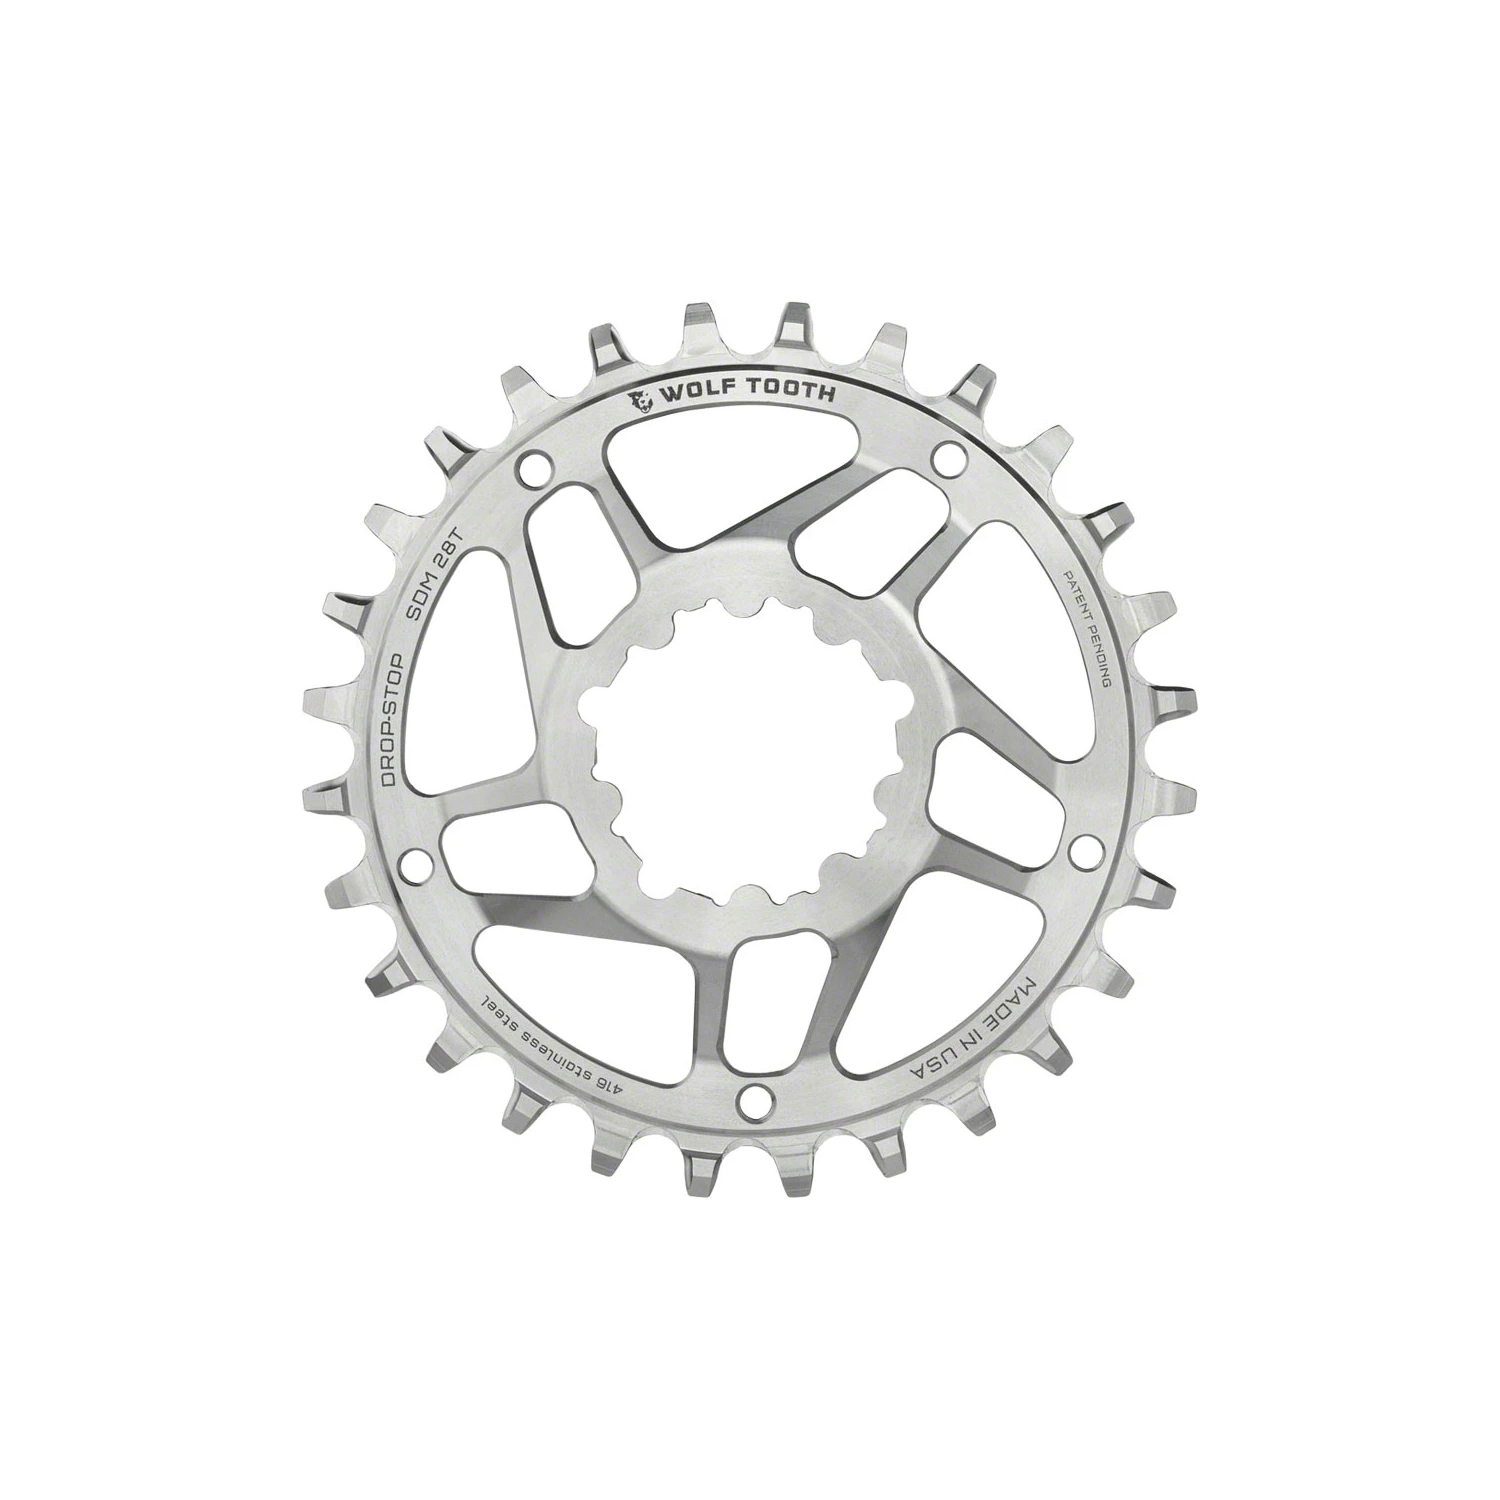 Wolf Tooth Direct Mount Chainrings for SRAM Cranks